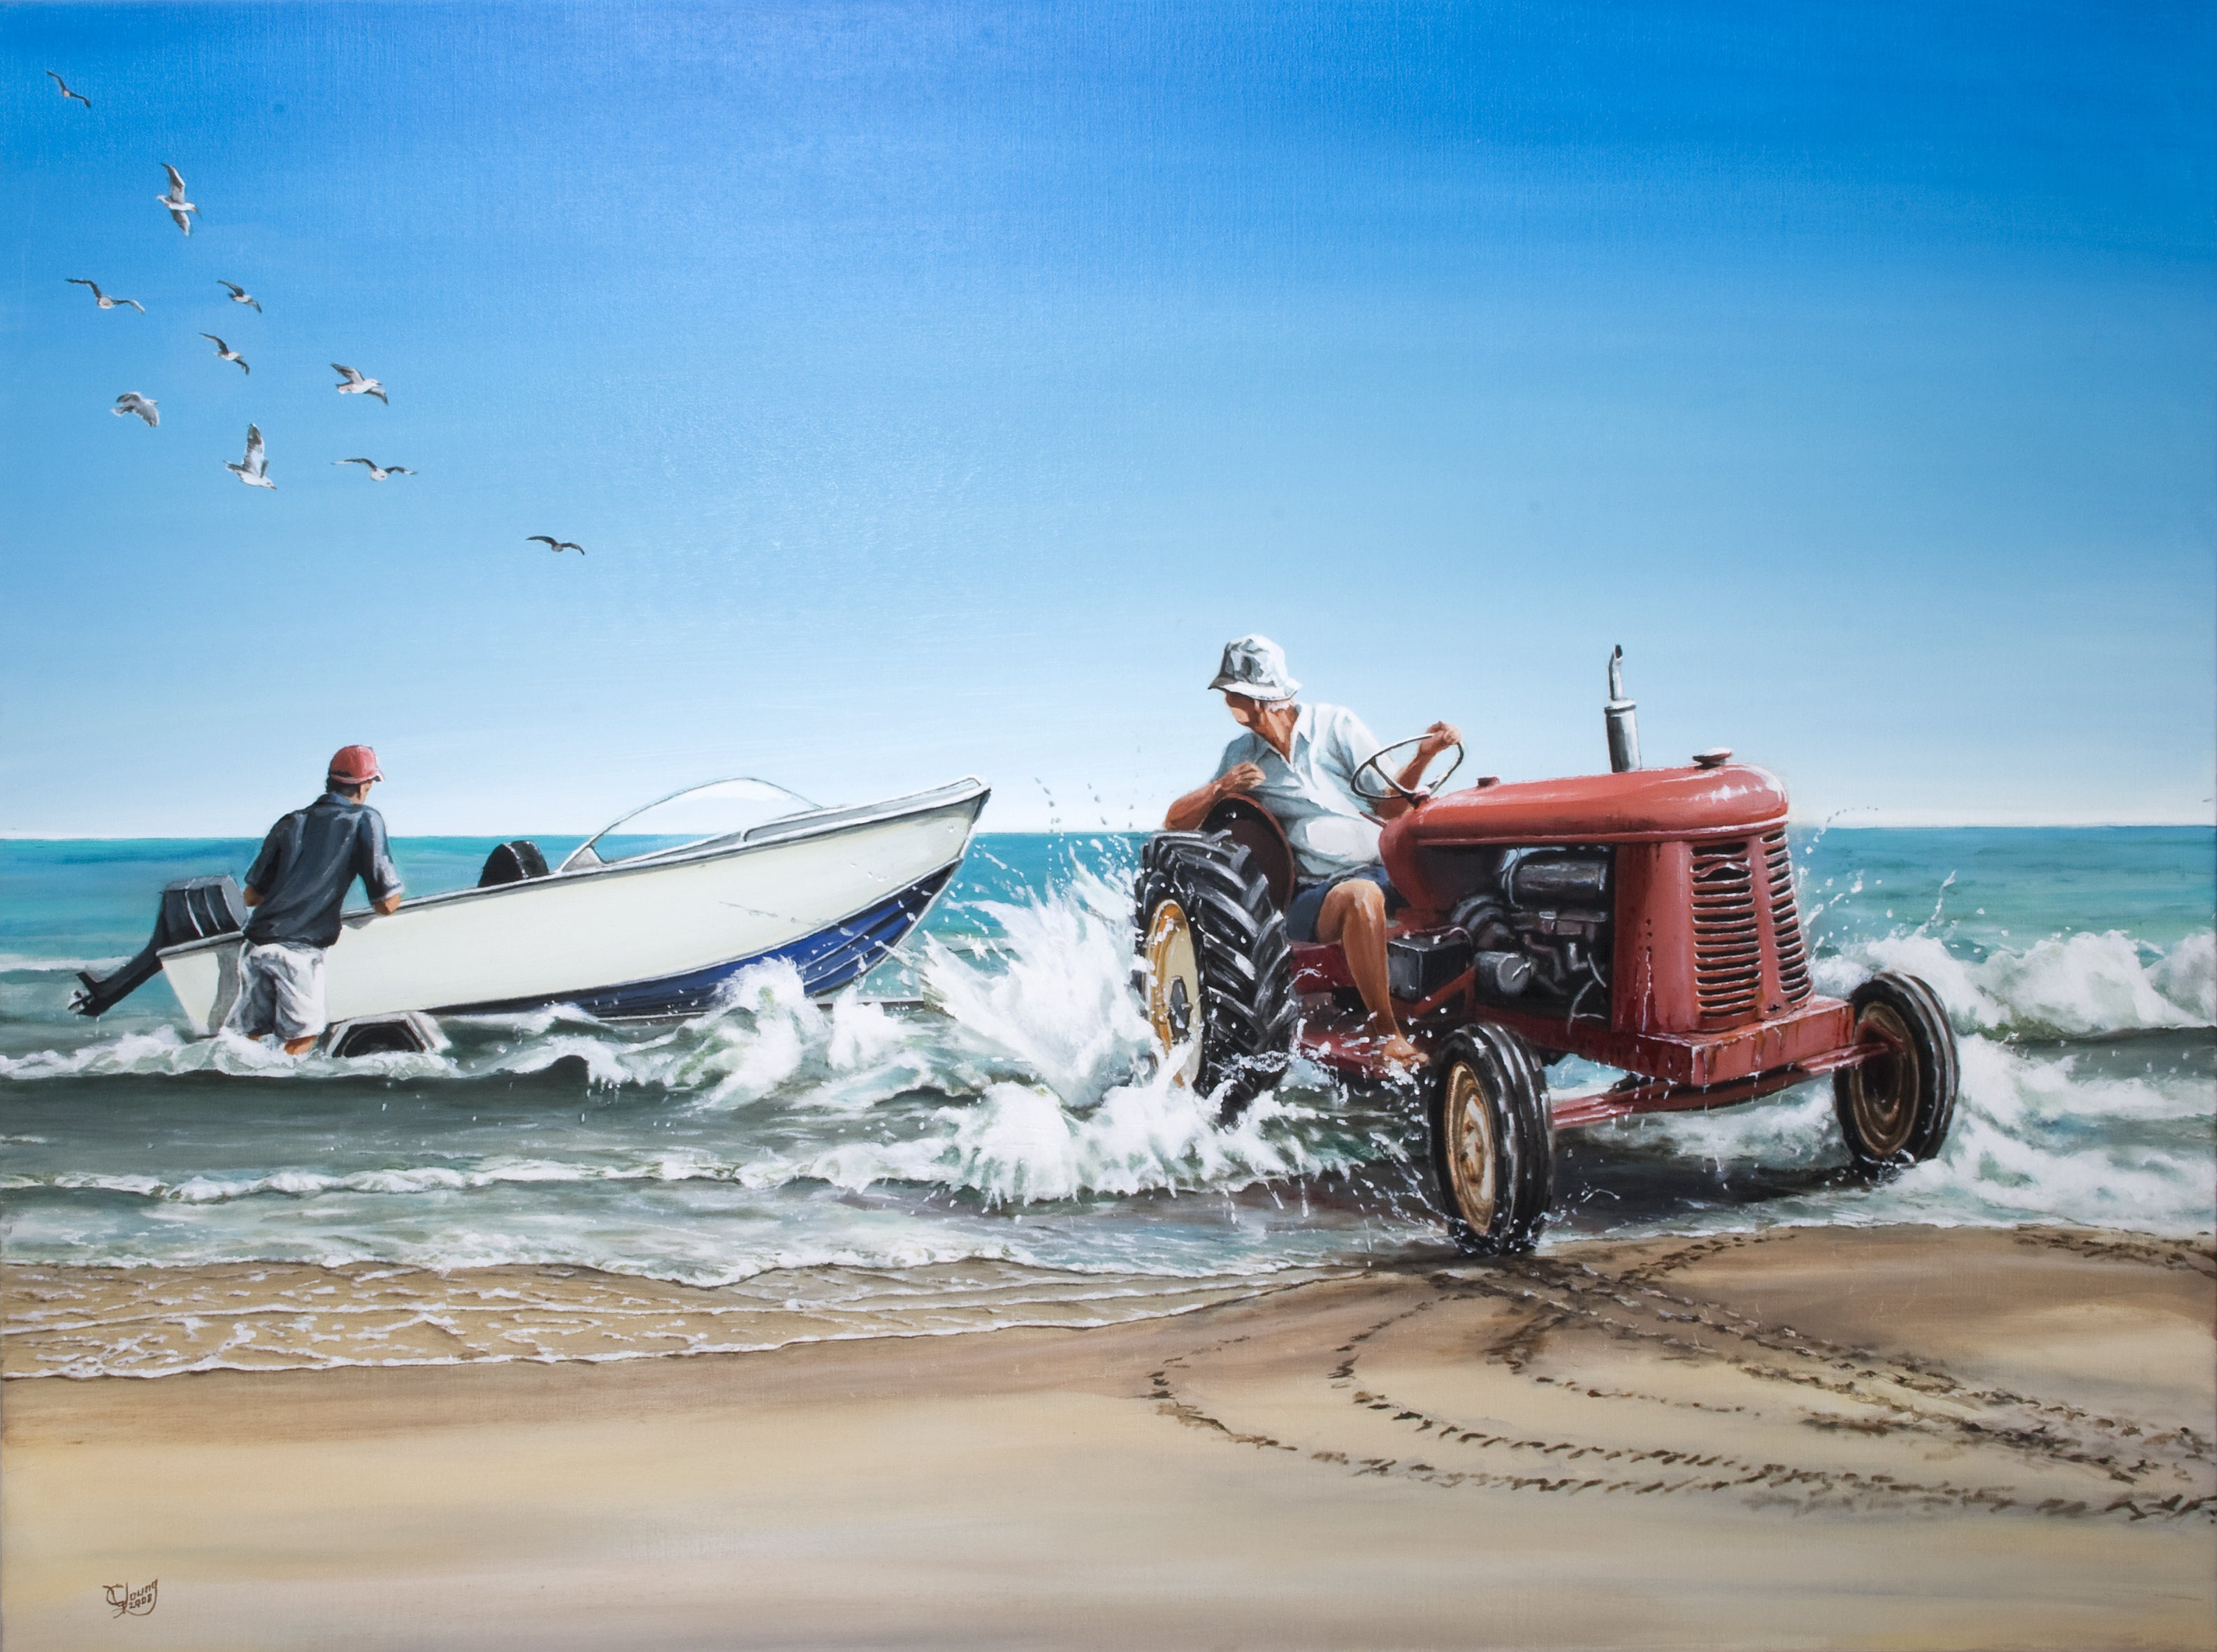 Launching the Boat Prints - grahamyoungartist.com - Original Artwork and Prints by New Zealand Artist Graham Young